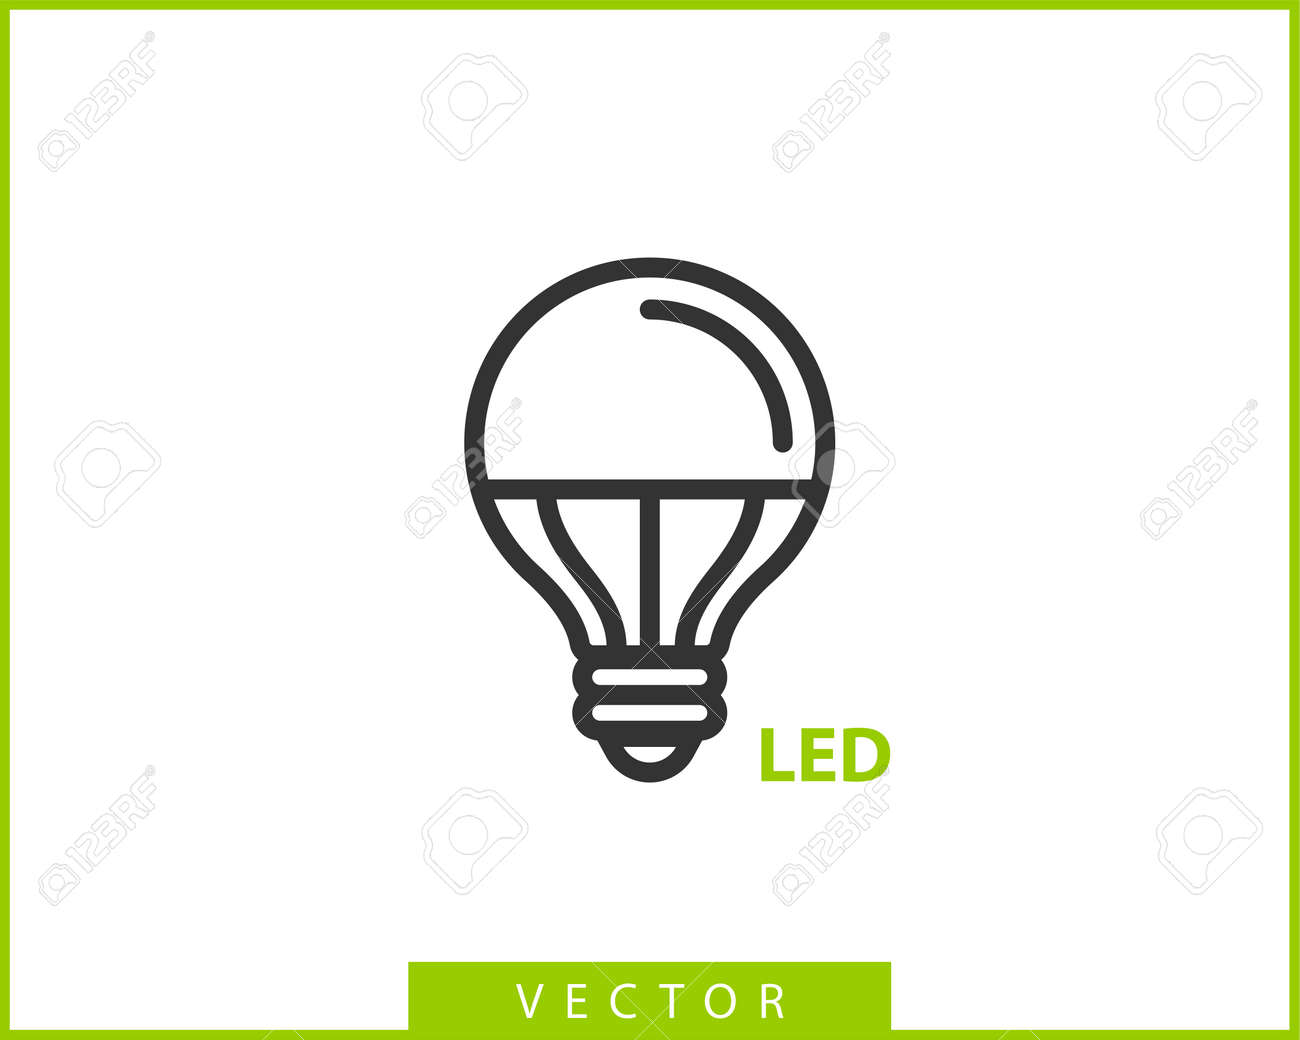 Light Bulb Icon Vector Llightbulb Idea Logo Concept Lamp Electricity Royalty Free Cliparts Vectors And Stock Illustration Image 124477511